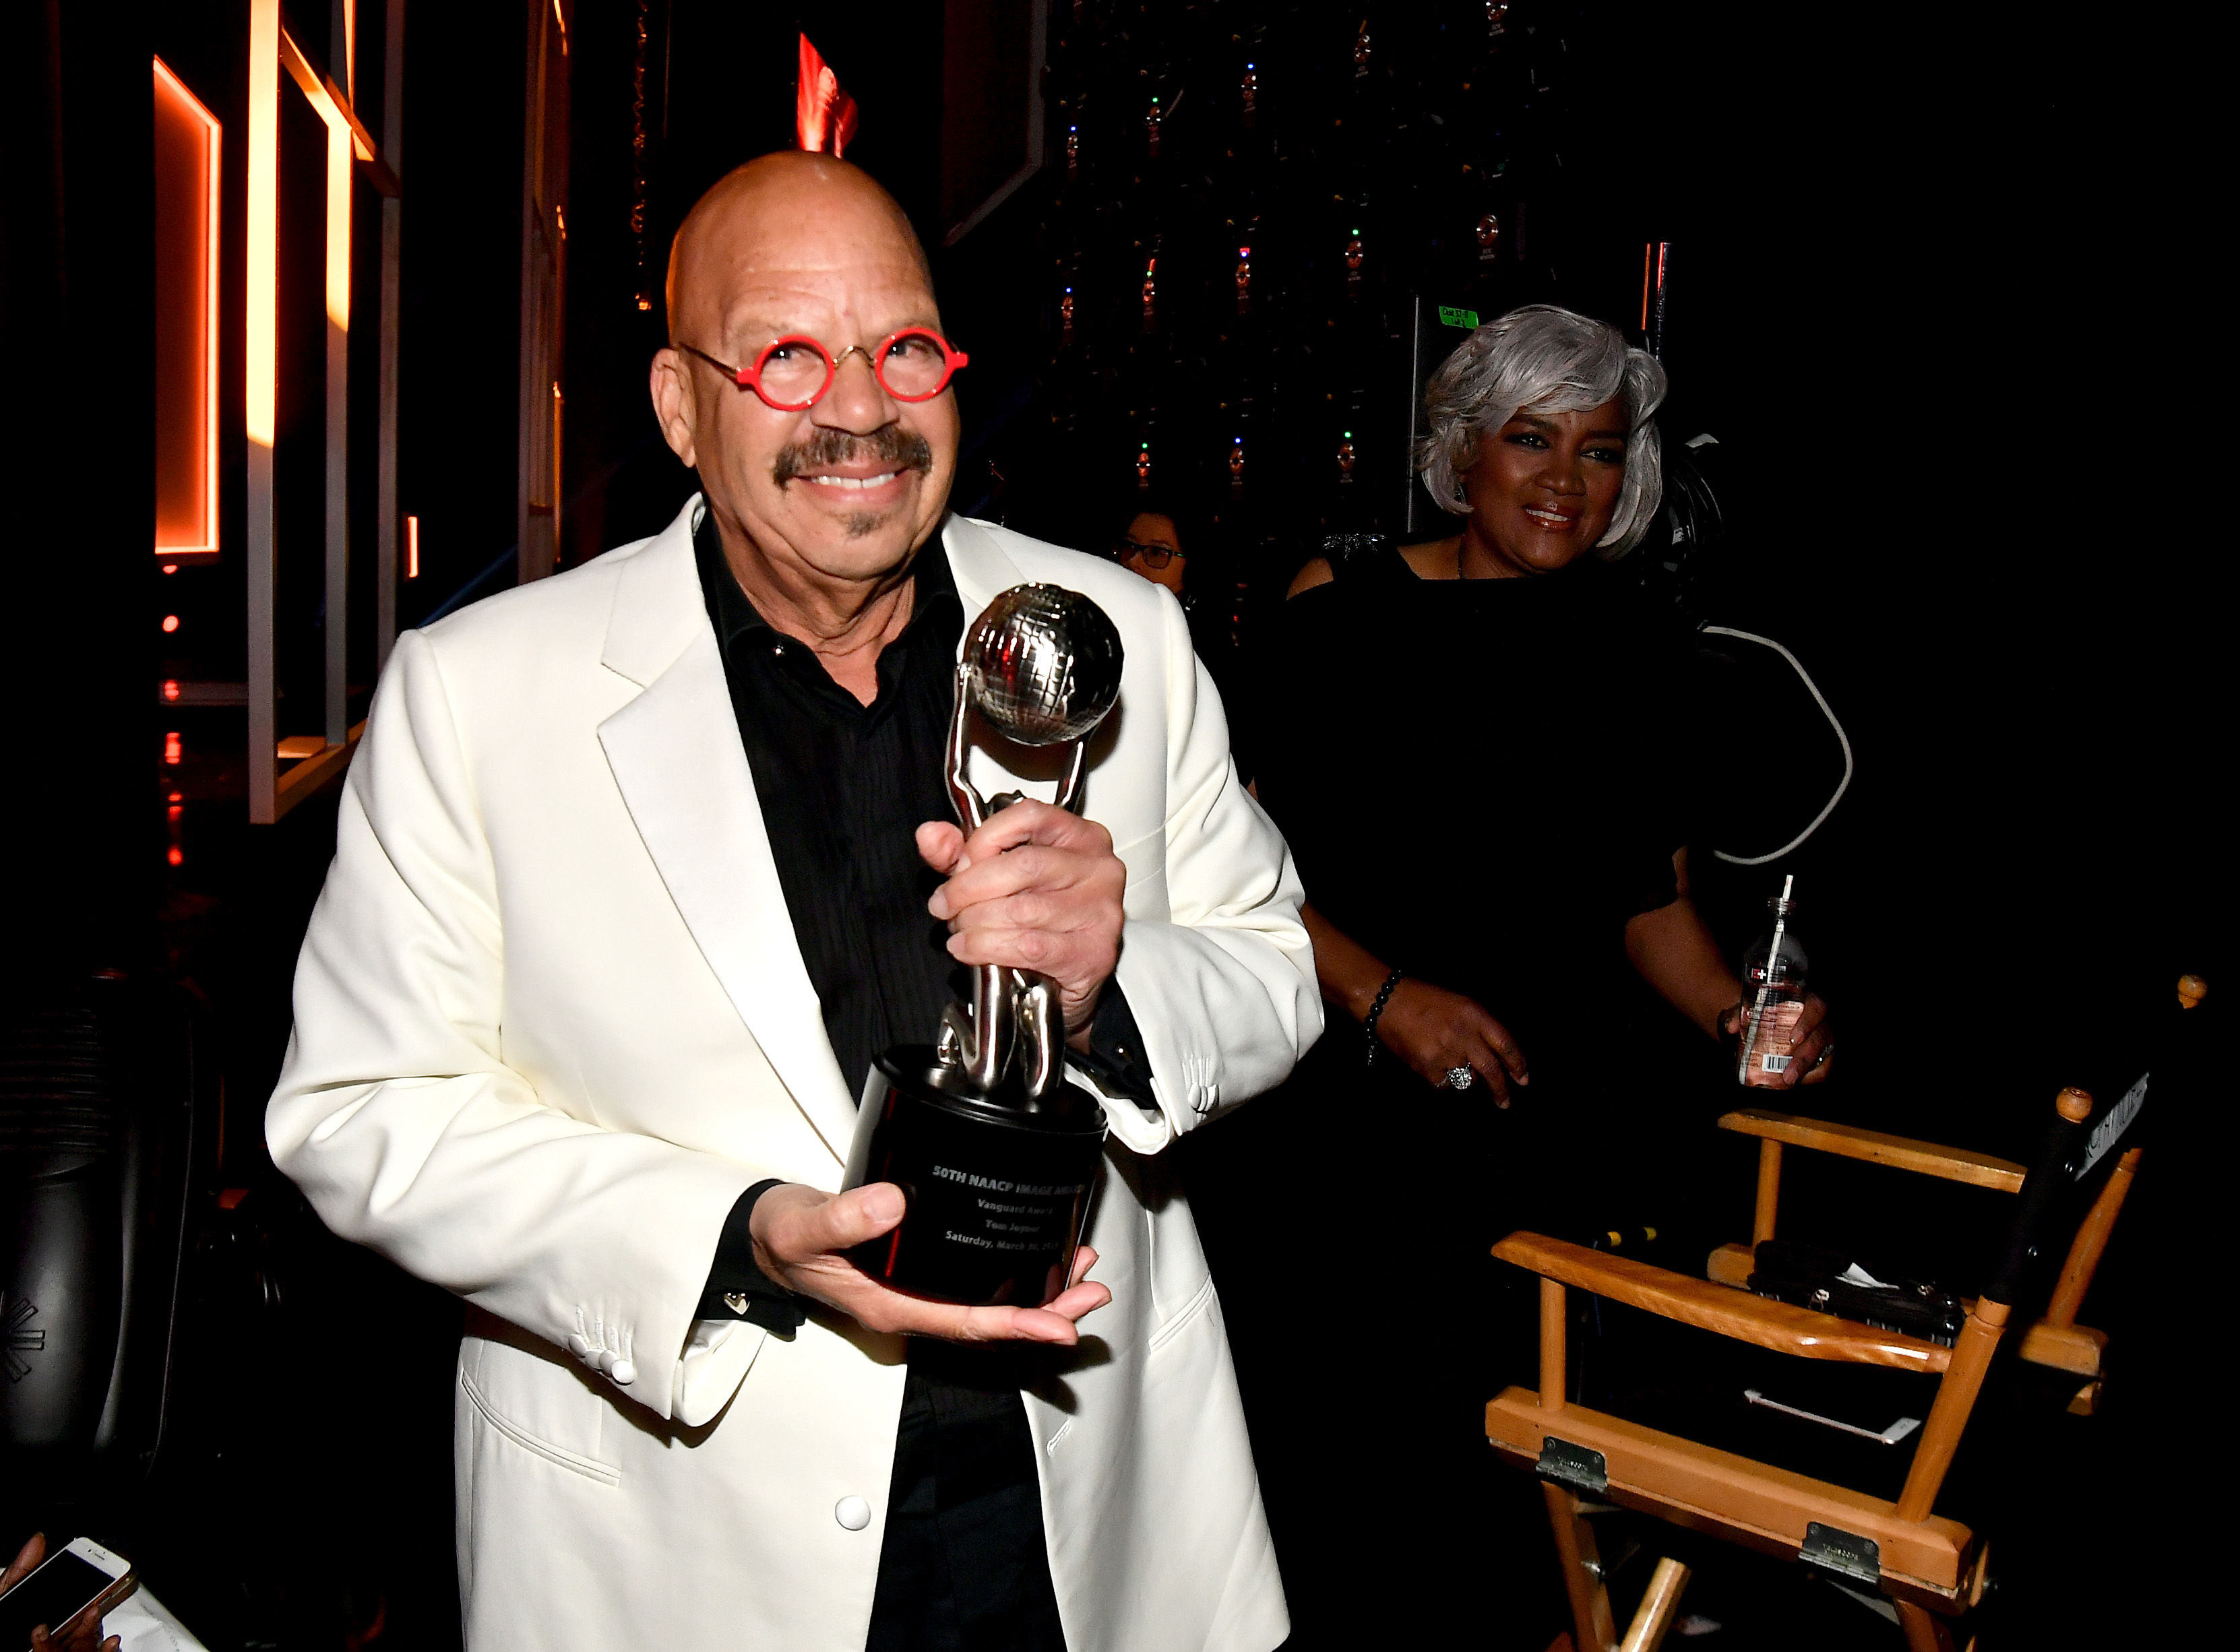 After 25 years on the air, radio legend Tom Joyner signs off